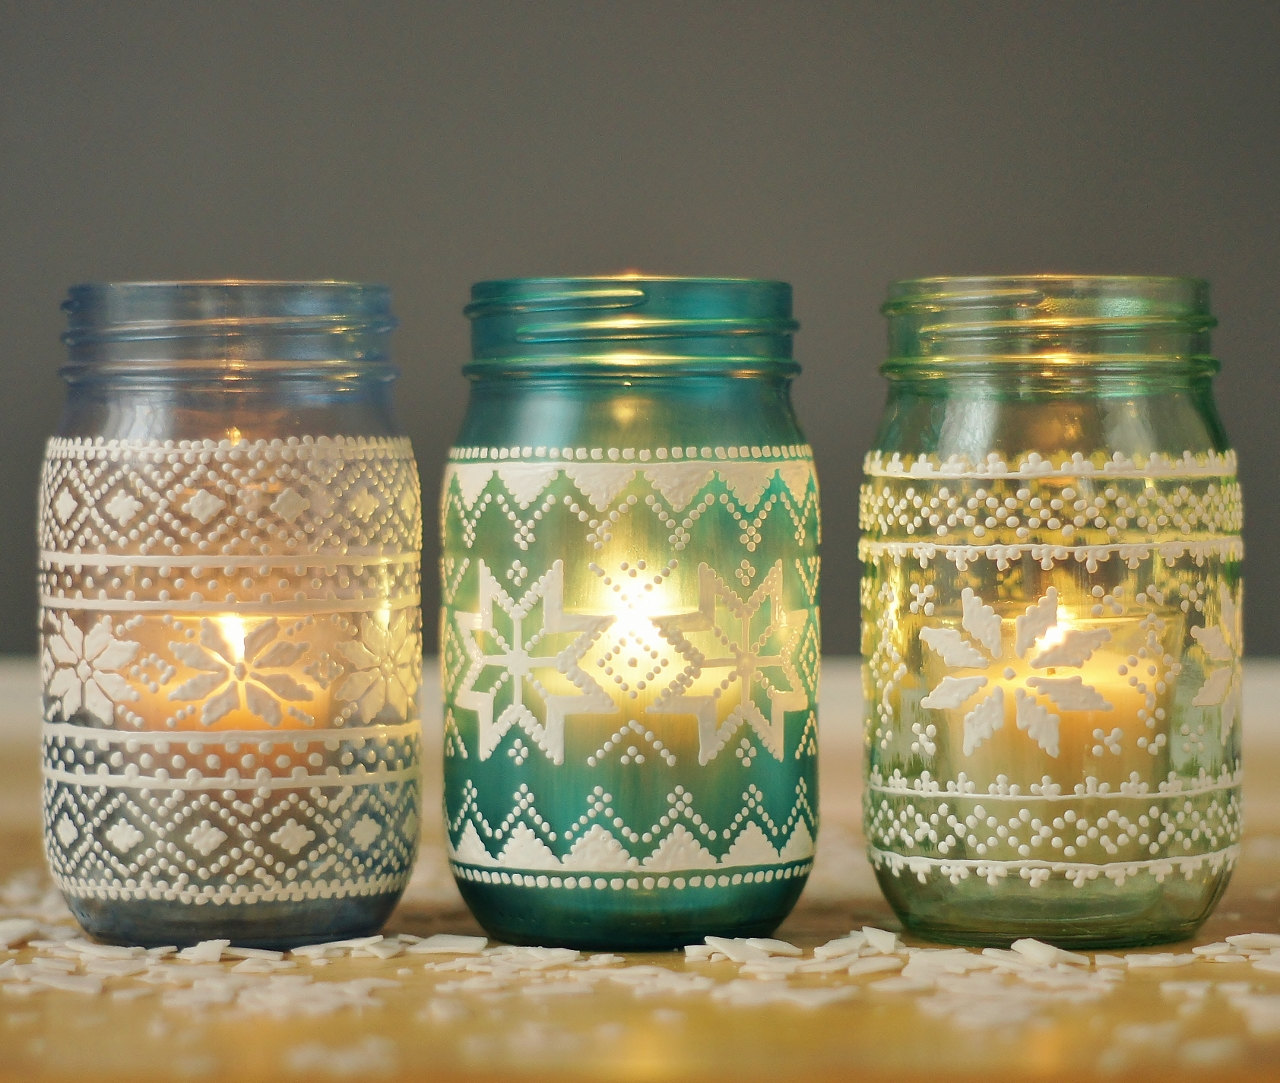 10 Festive Holiday Scented Candles You Need This Year